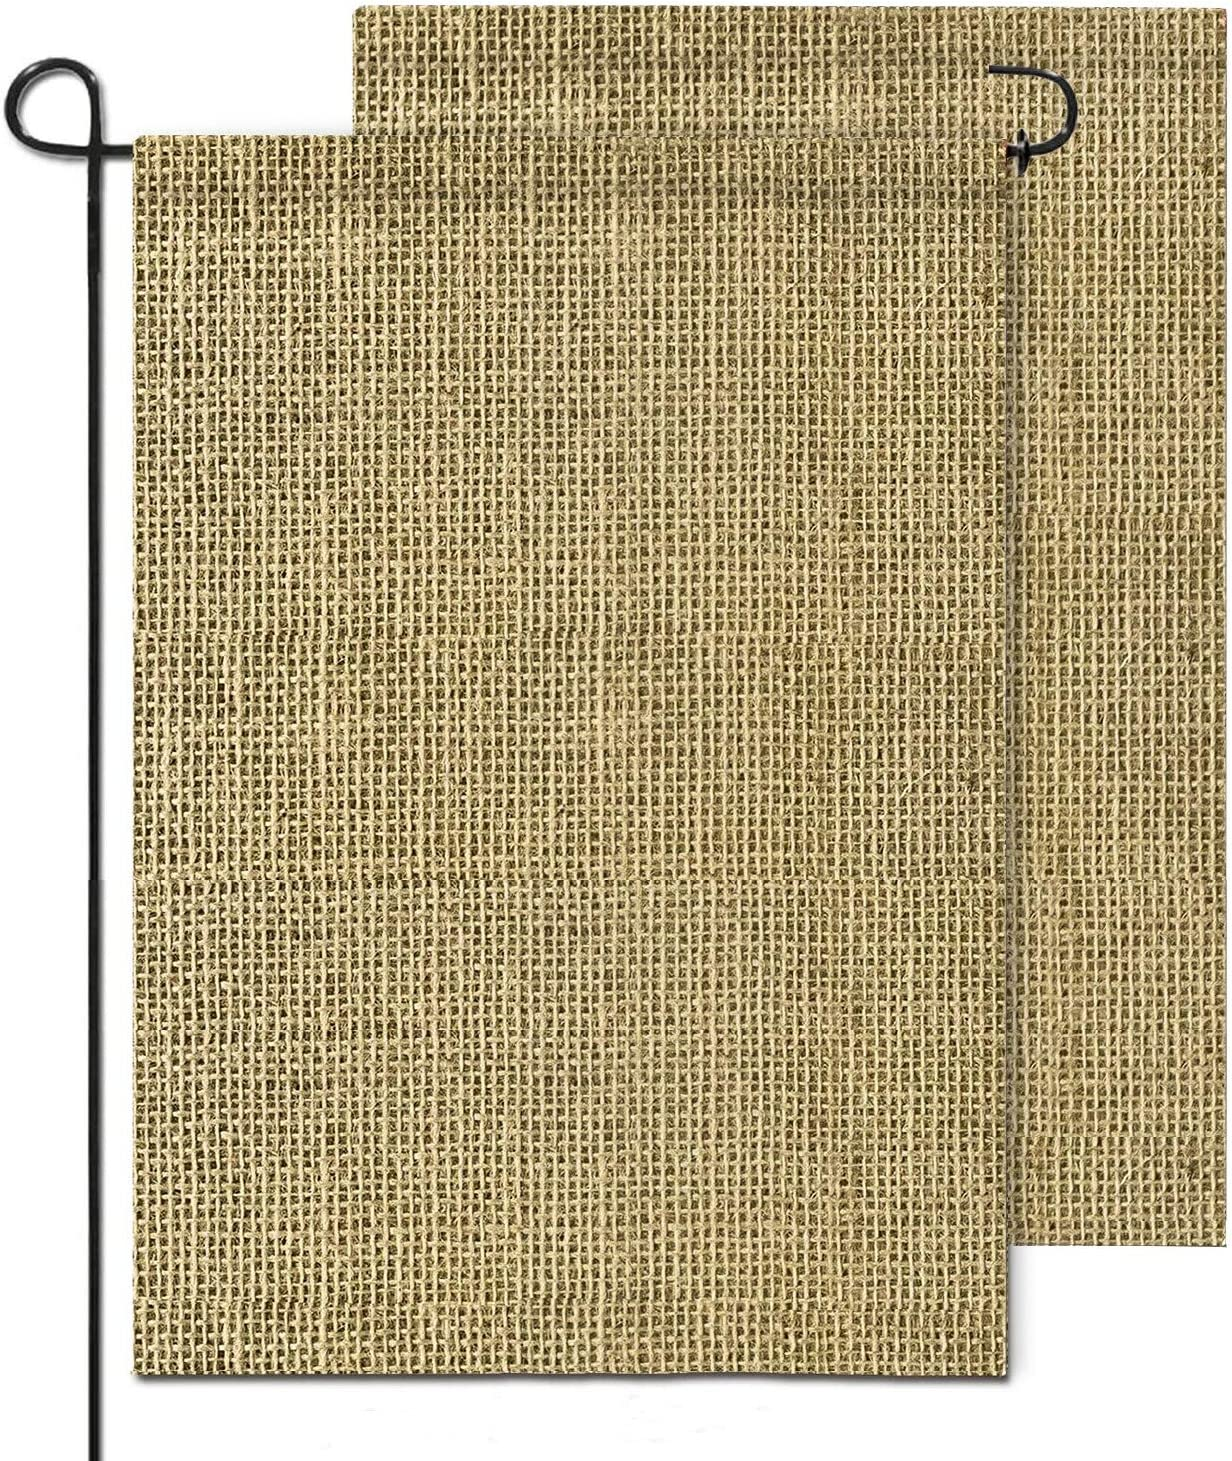 hblife Personalized Blank Burlap Garden Flag Happy Camper Banner Lawn Yard Outdoor Seasonal Holiday DIY Flag for New Home Gift Wedding Gift Housewarming Gift Home Decor,One-Sided (set of 2)